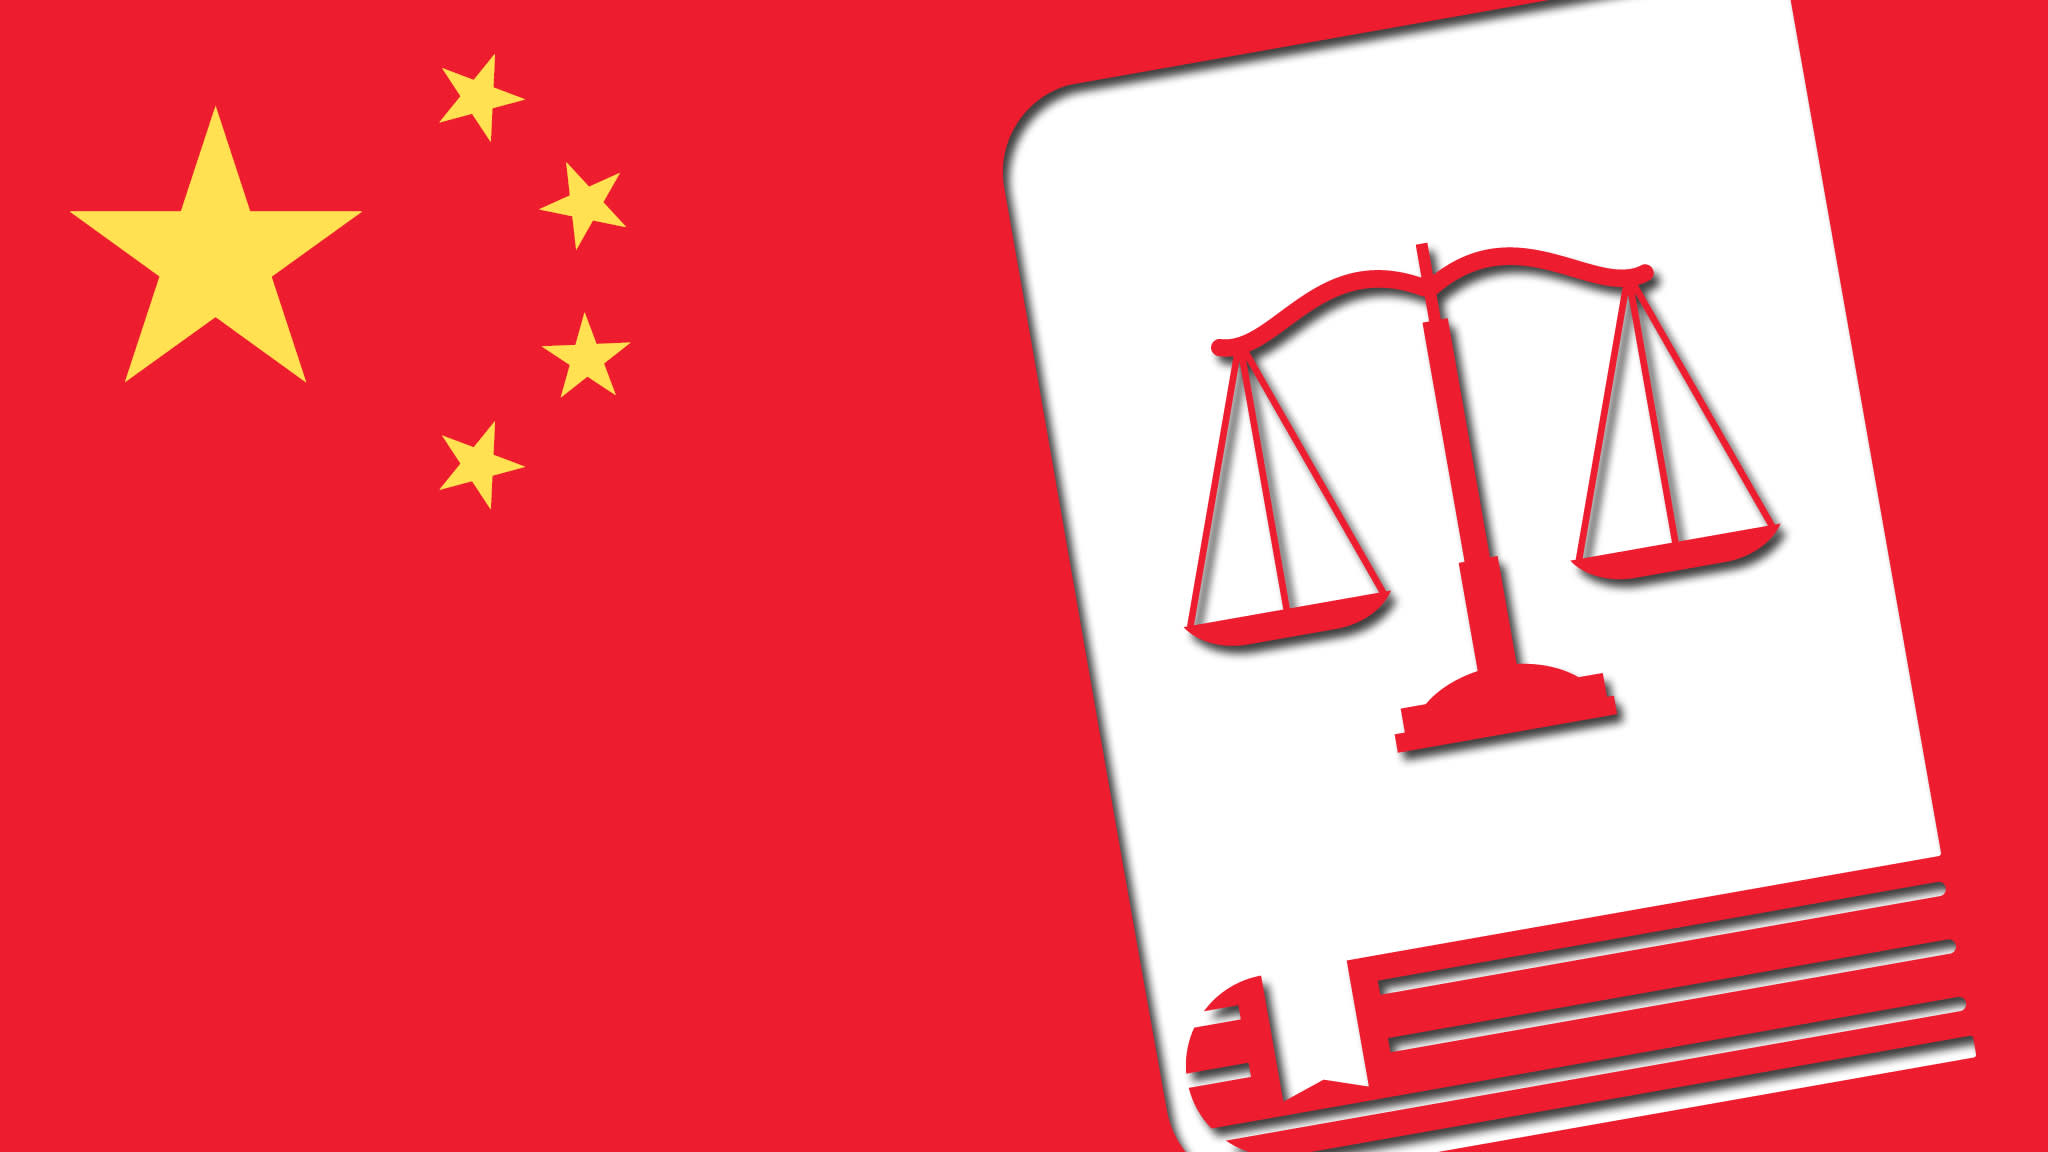 Chinese M&A boom provides slim pickings for global law firms